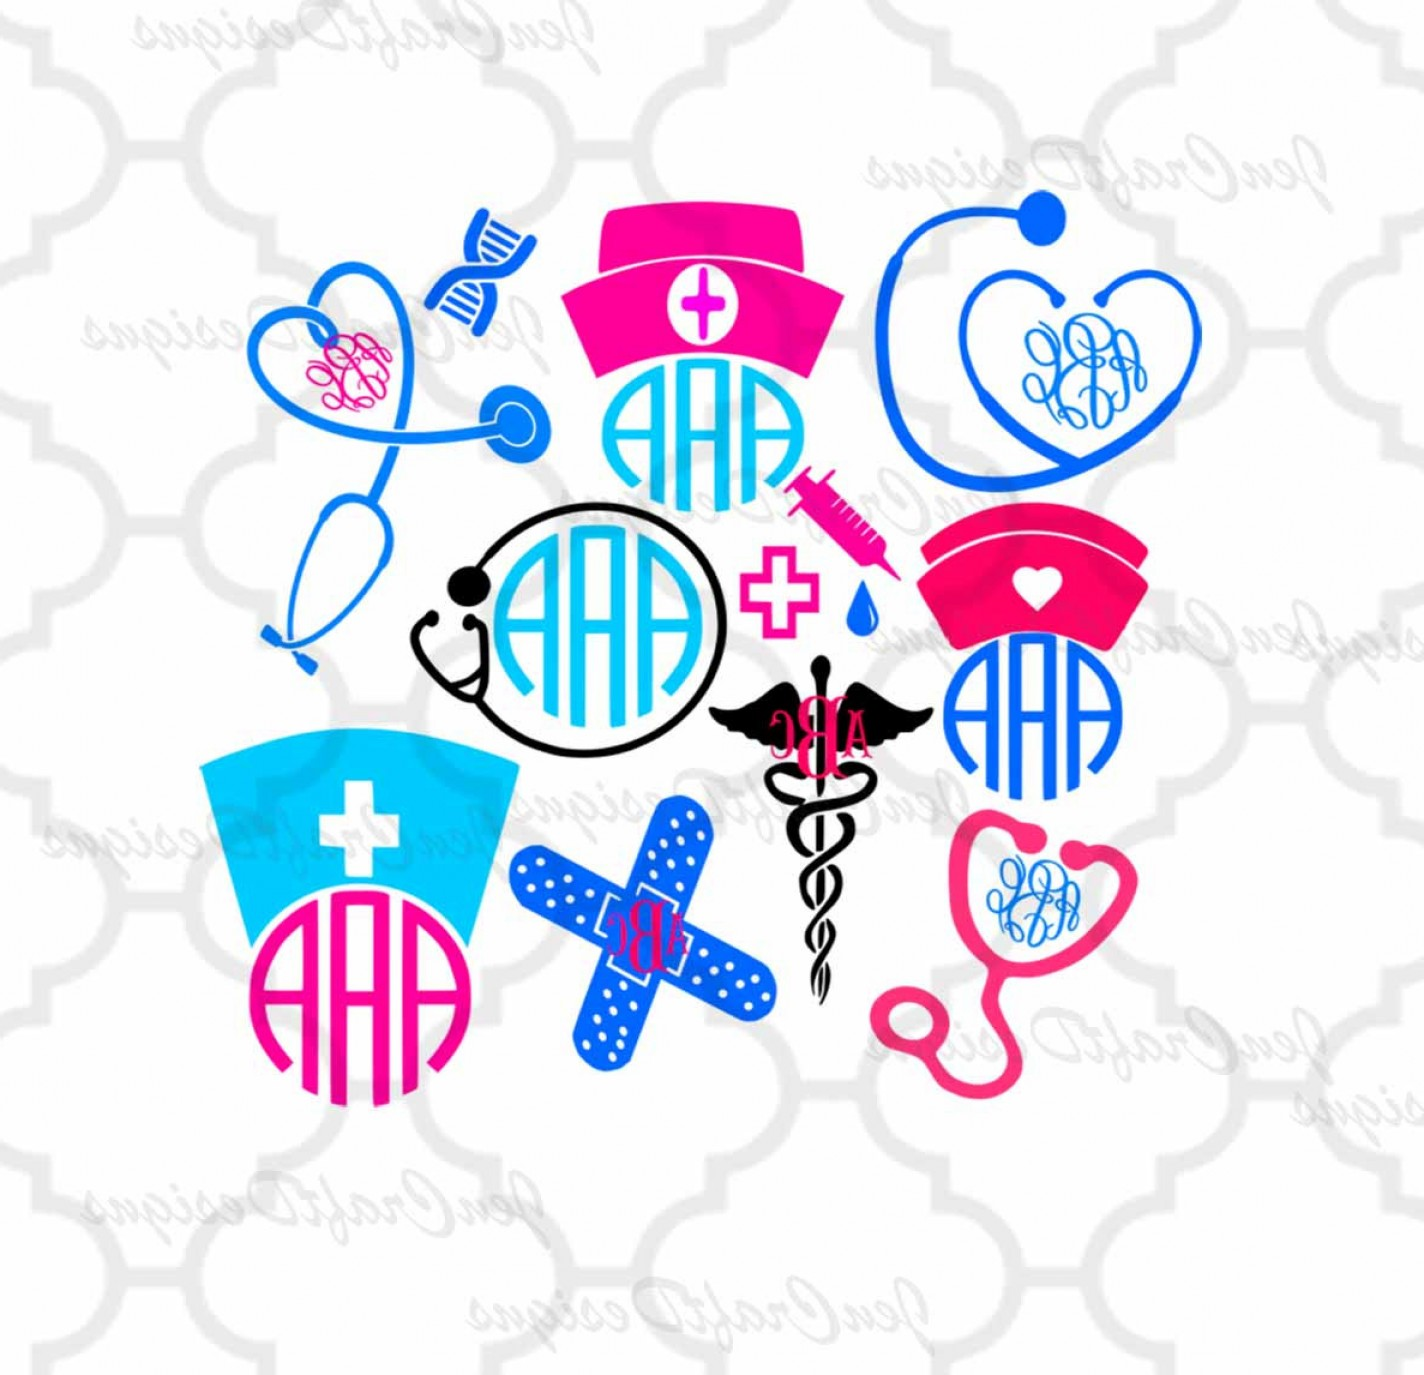 Nurse Vector Art SVG: Nurse Svg Stethoscope Svg Nursing Svg